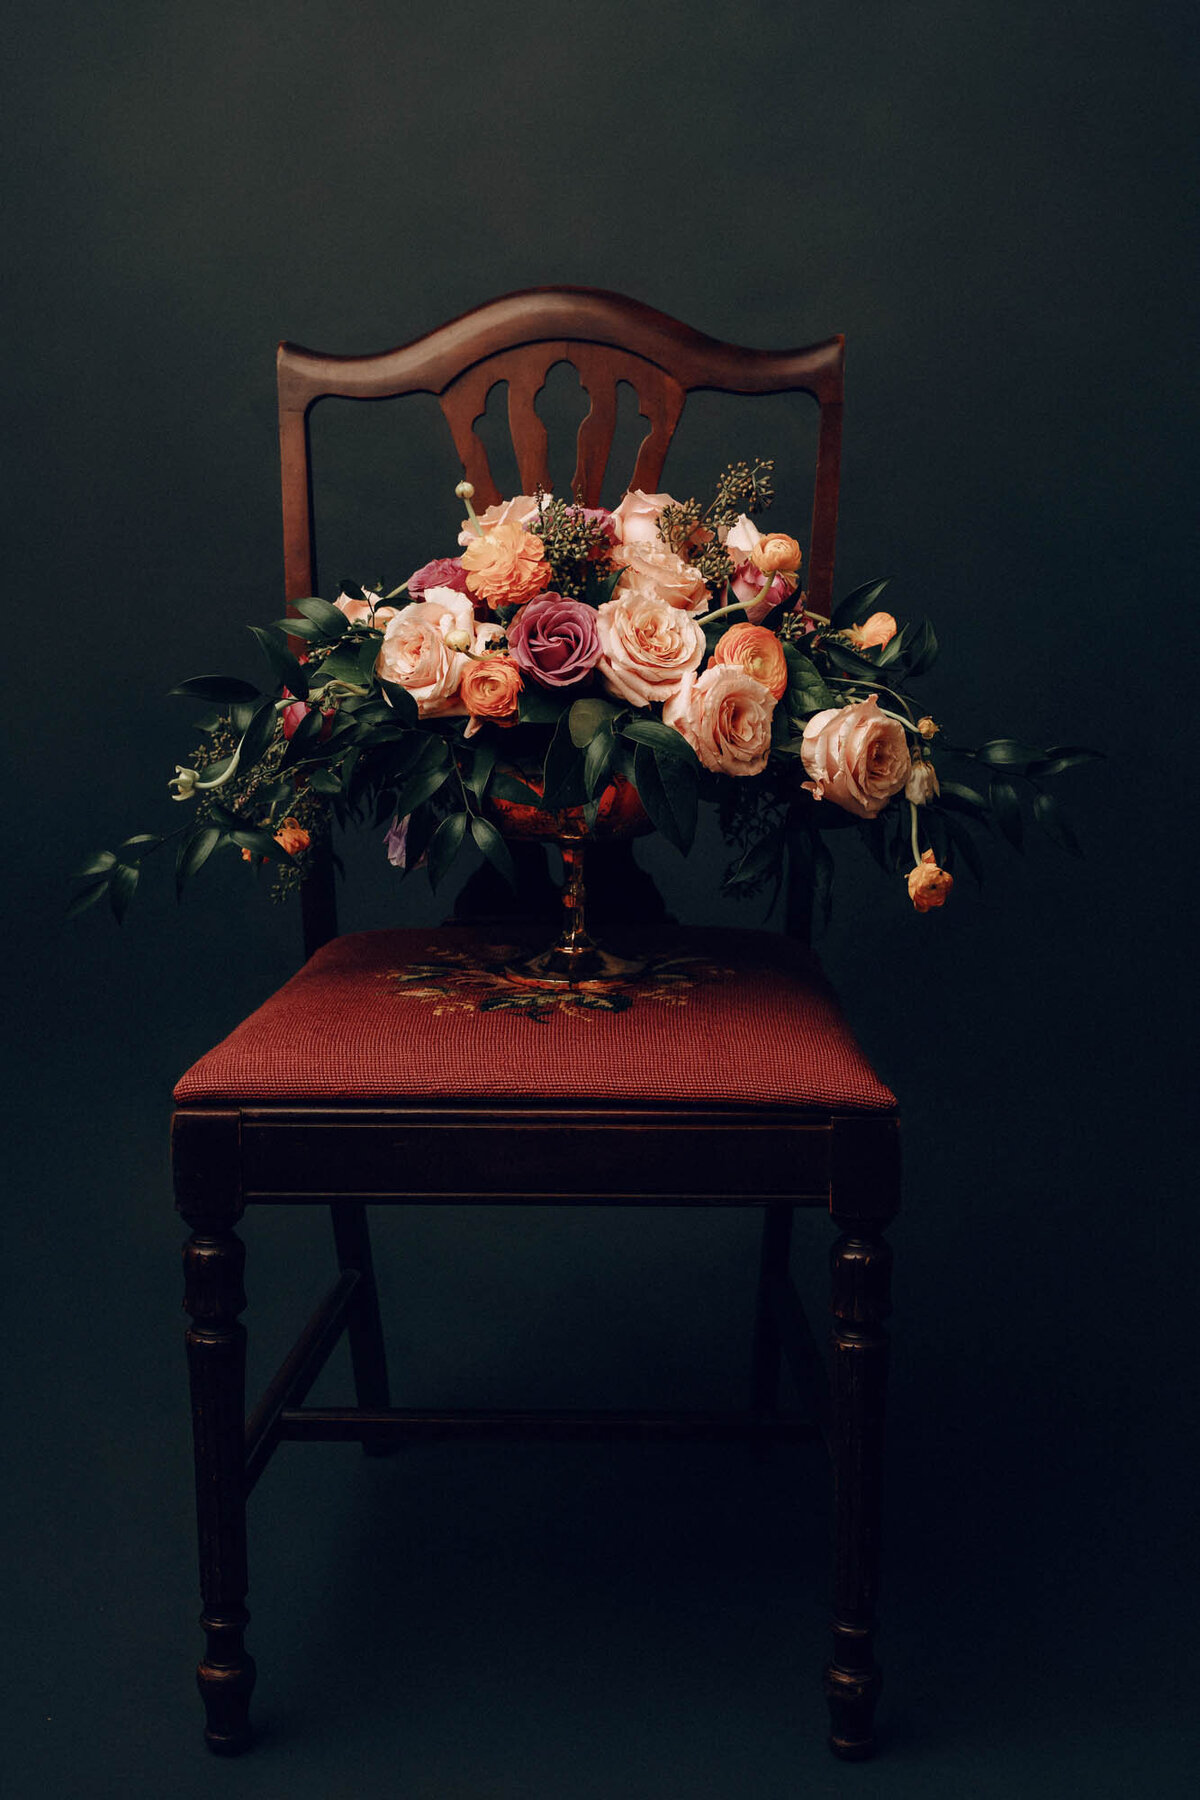 Vase of flowers on an antique chair. Houston, TX.